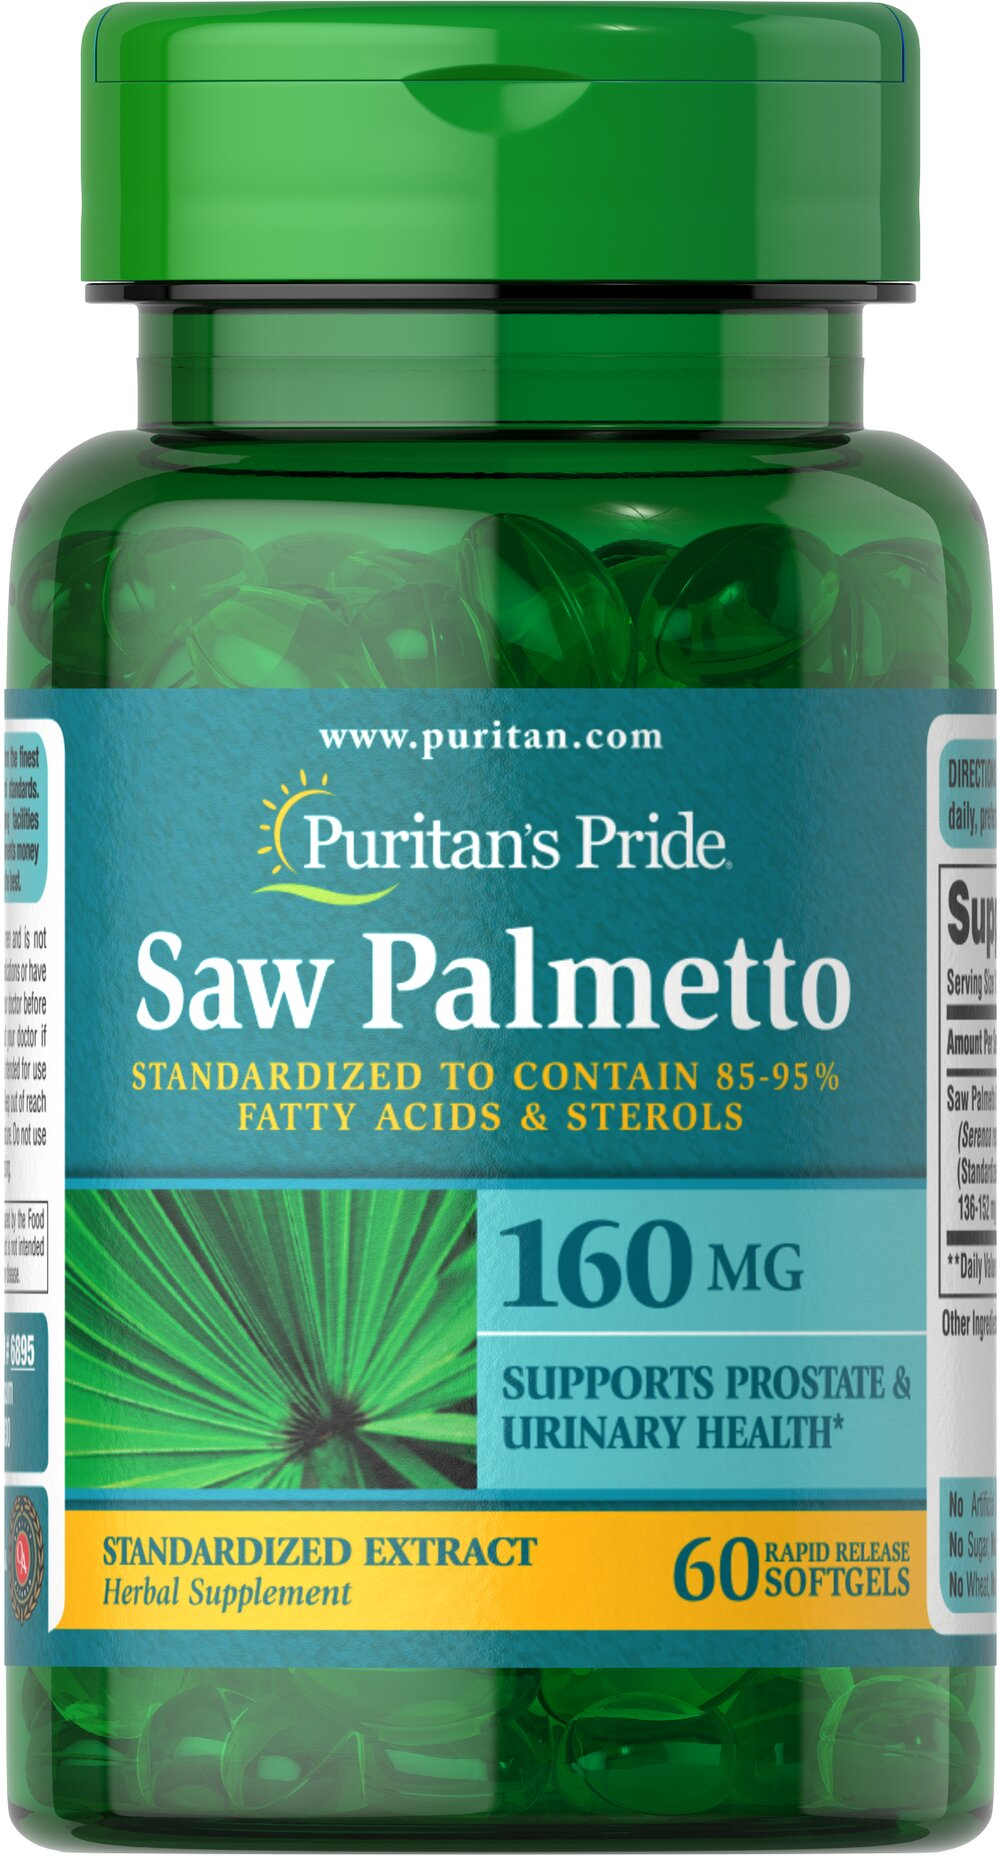 Saw Palmetto Standardized Extract 160 mg Thumbnail Alternate Bottle View